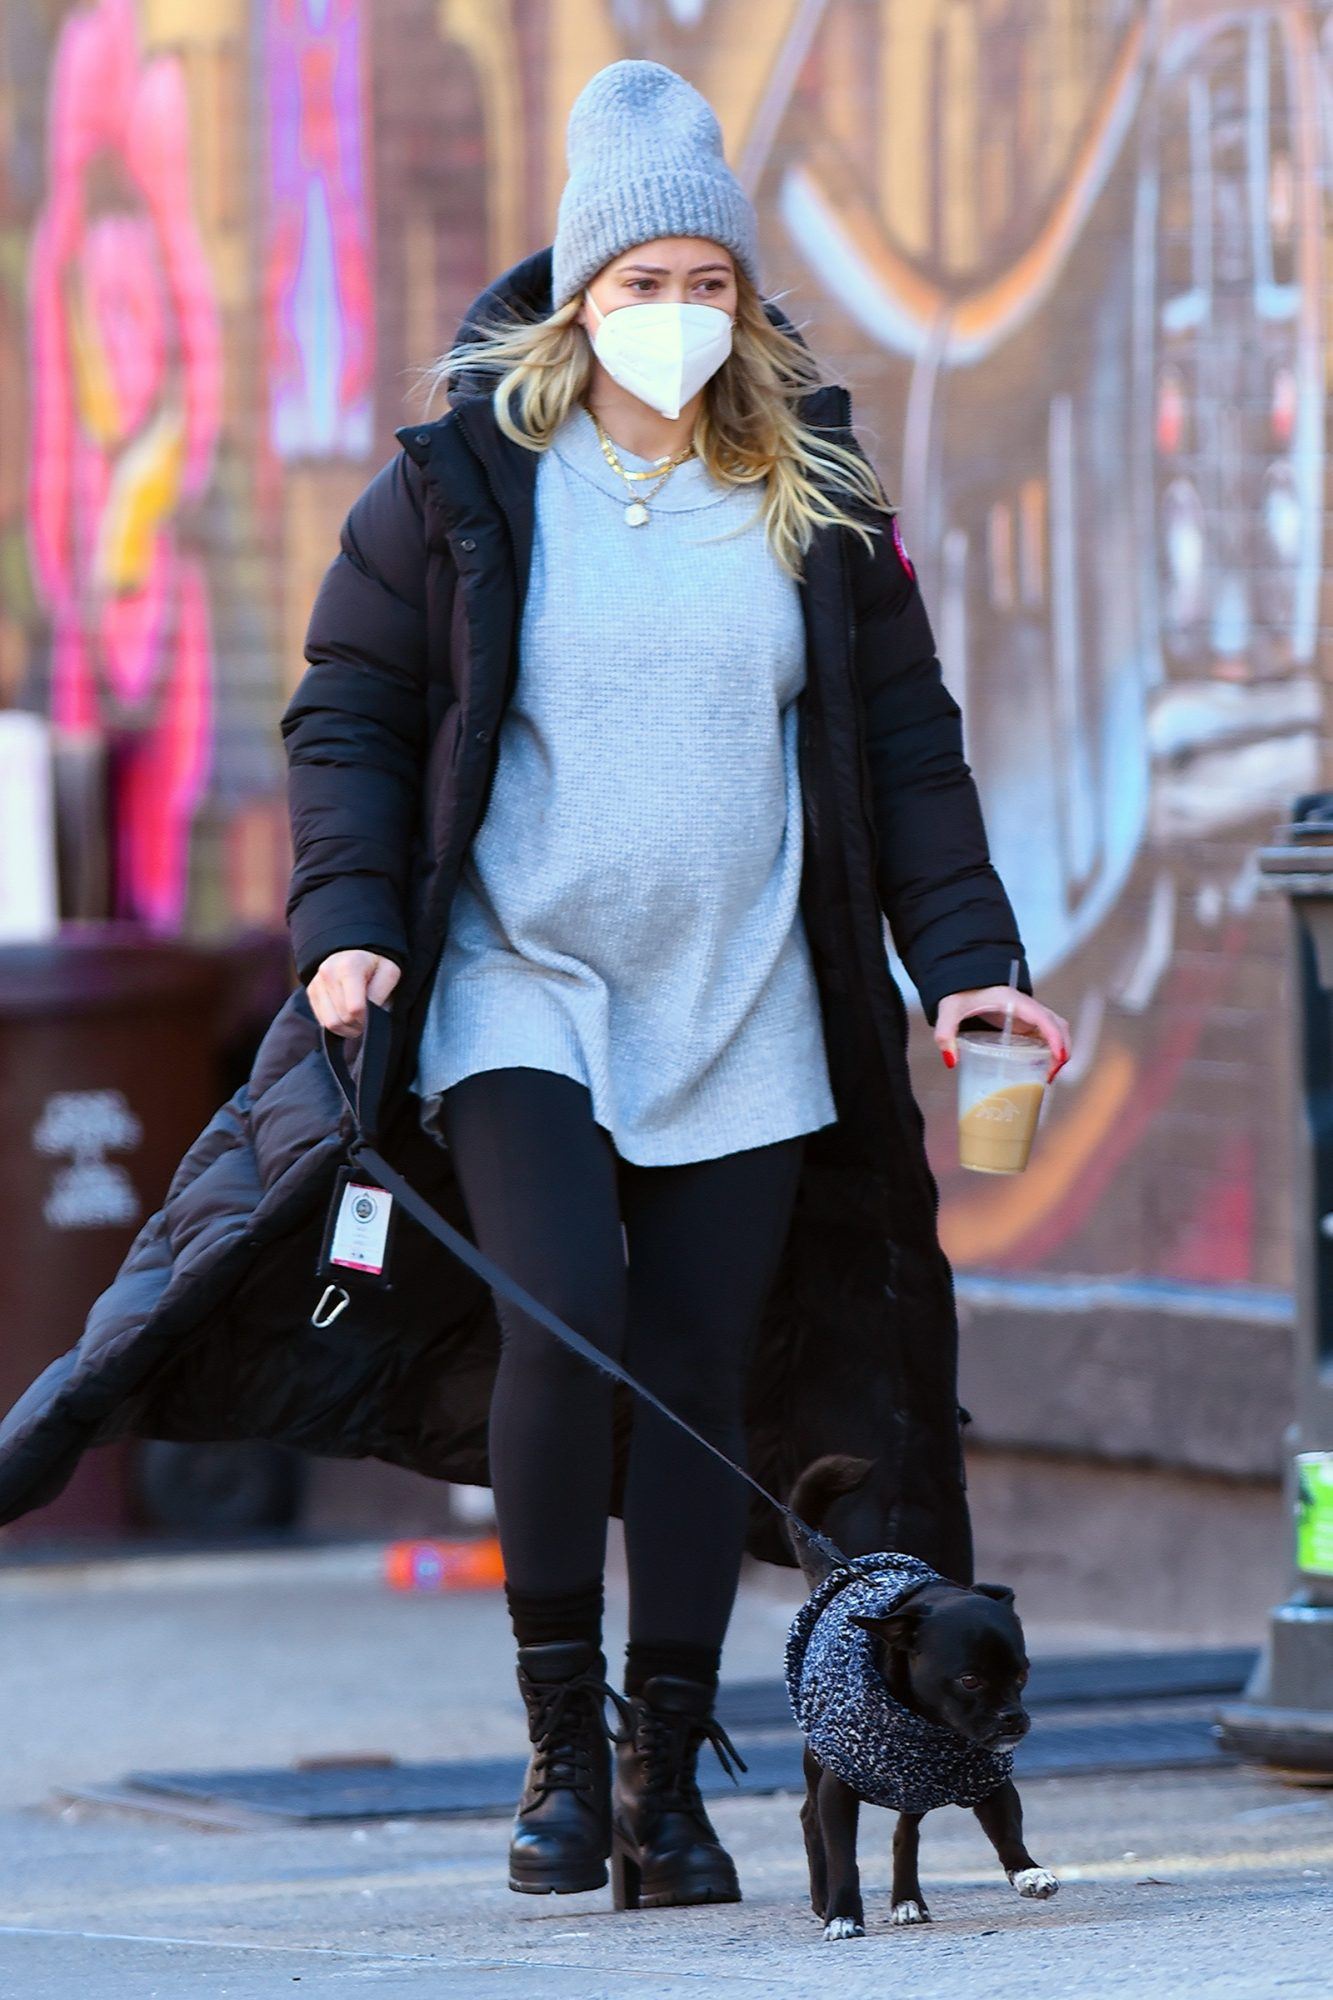 Hilary Duff is seen out walking her dog on January 6, 2021 in New York City